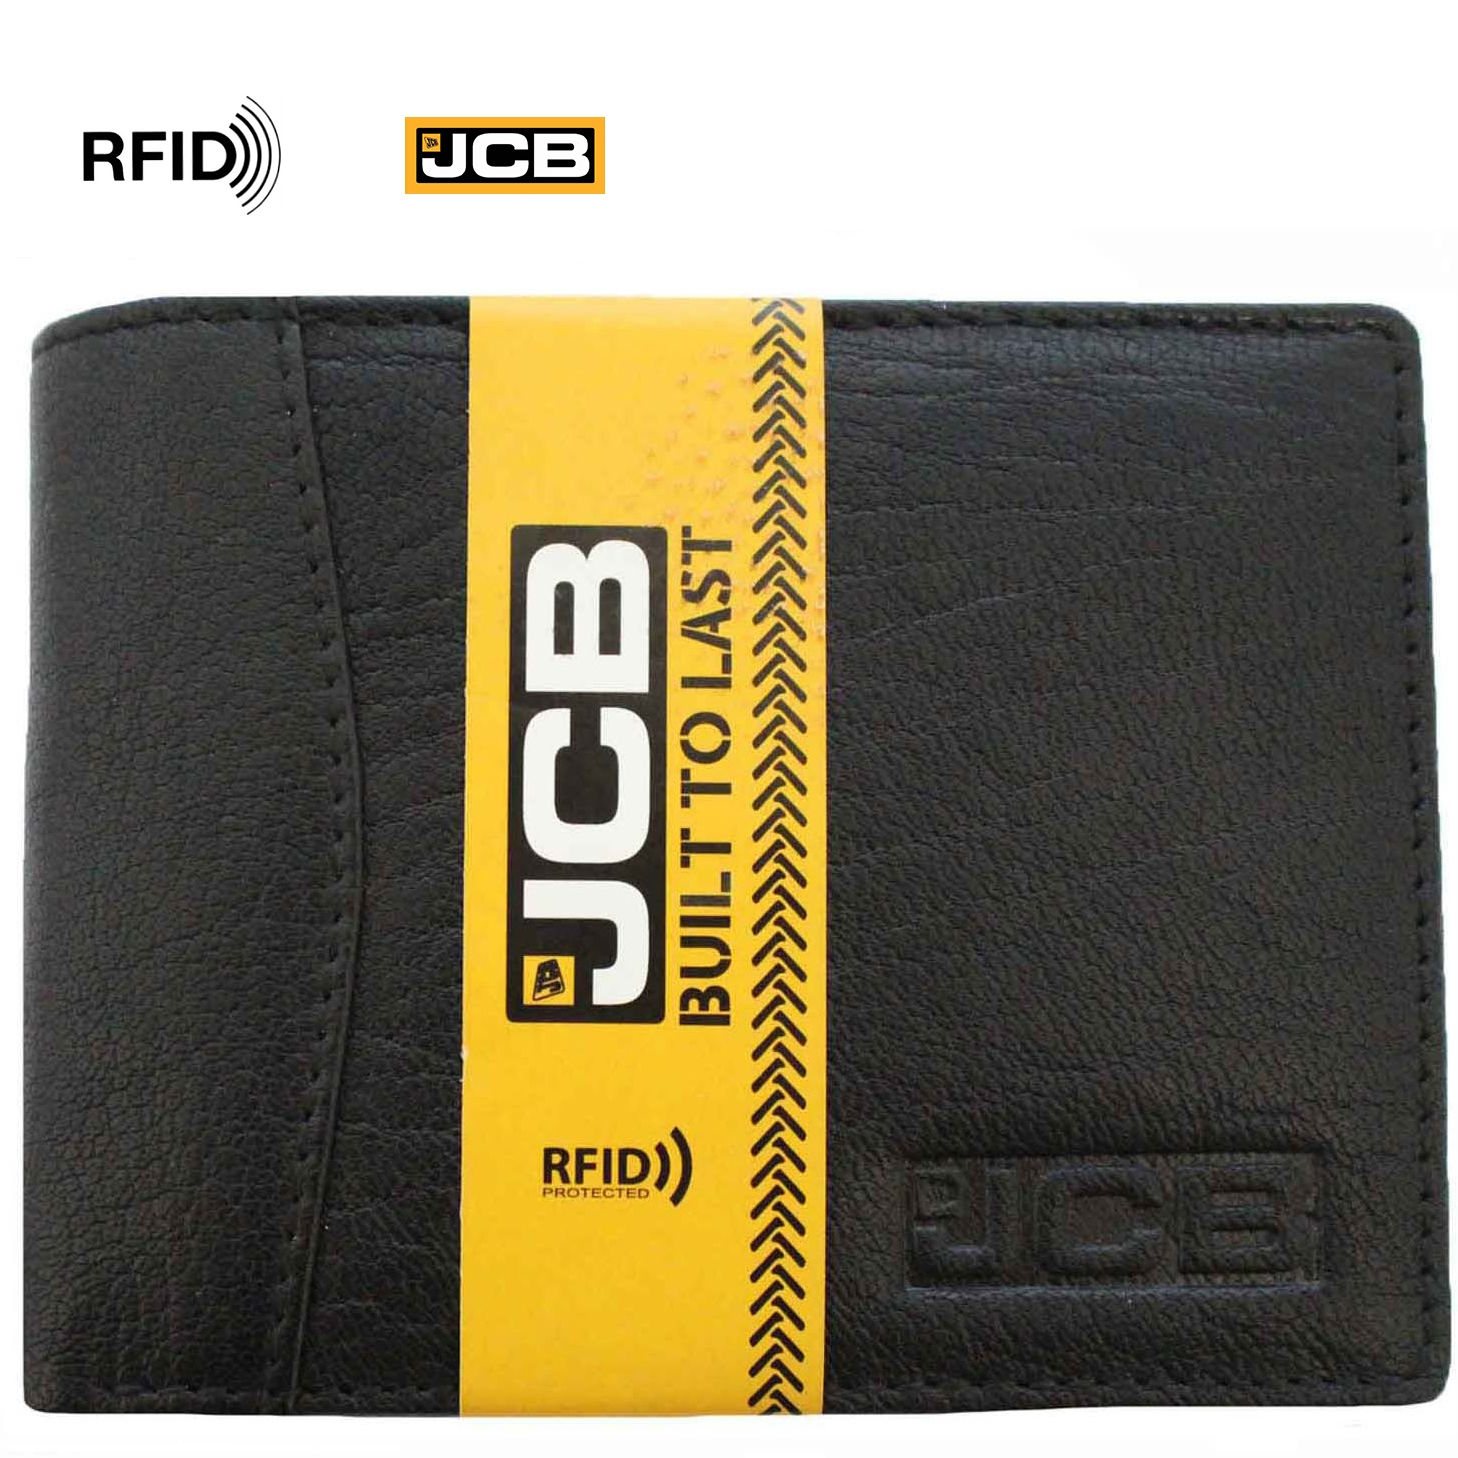 W53 Black - JCB Mens Wallet ~ BAGZONE - Suppliers of Fashion ... f32abfe10ae80